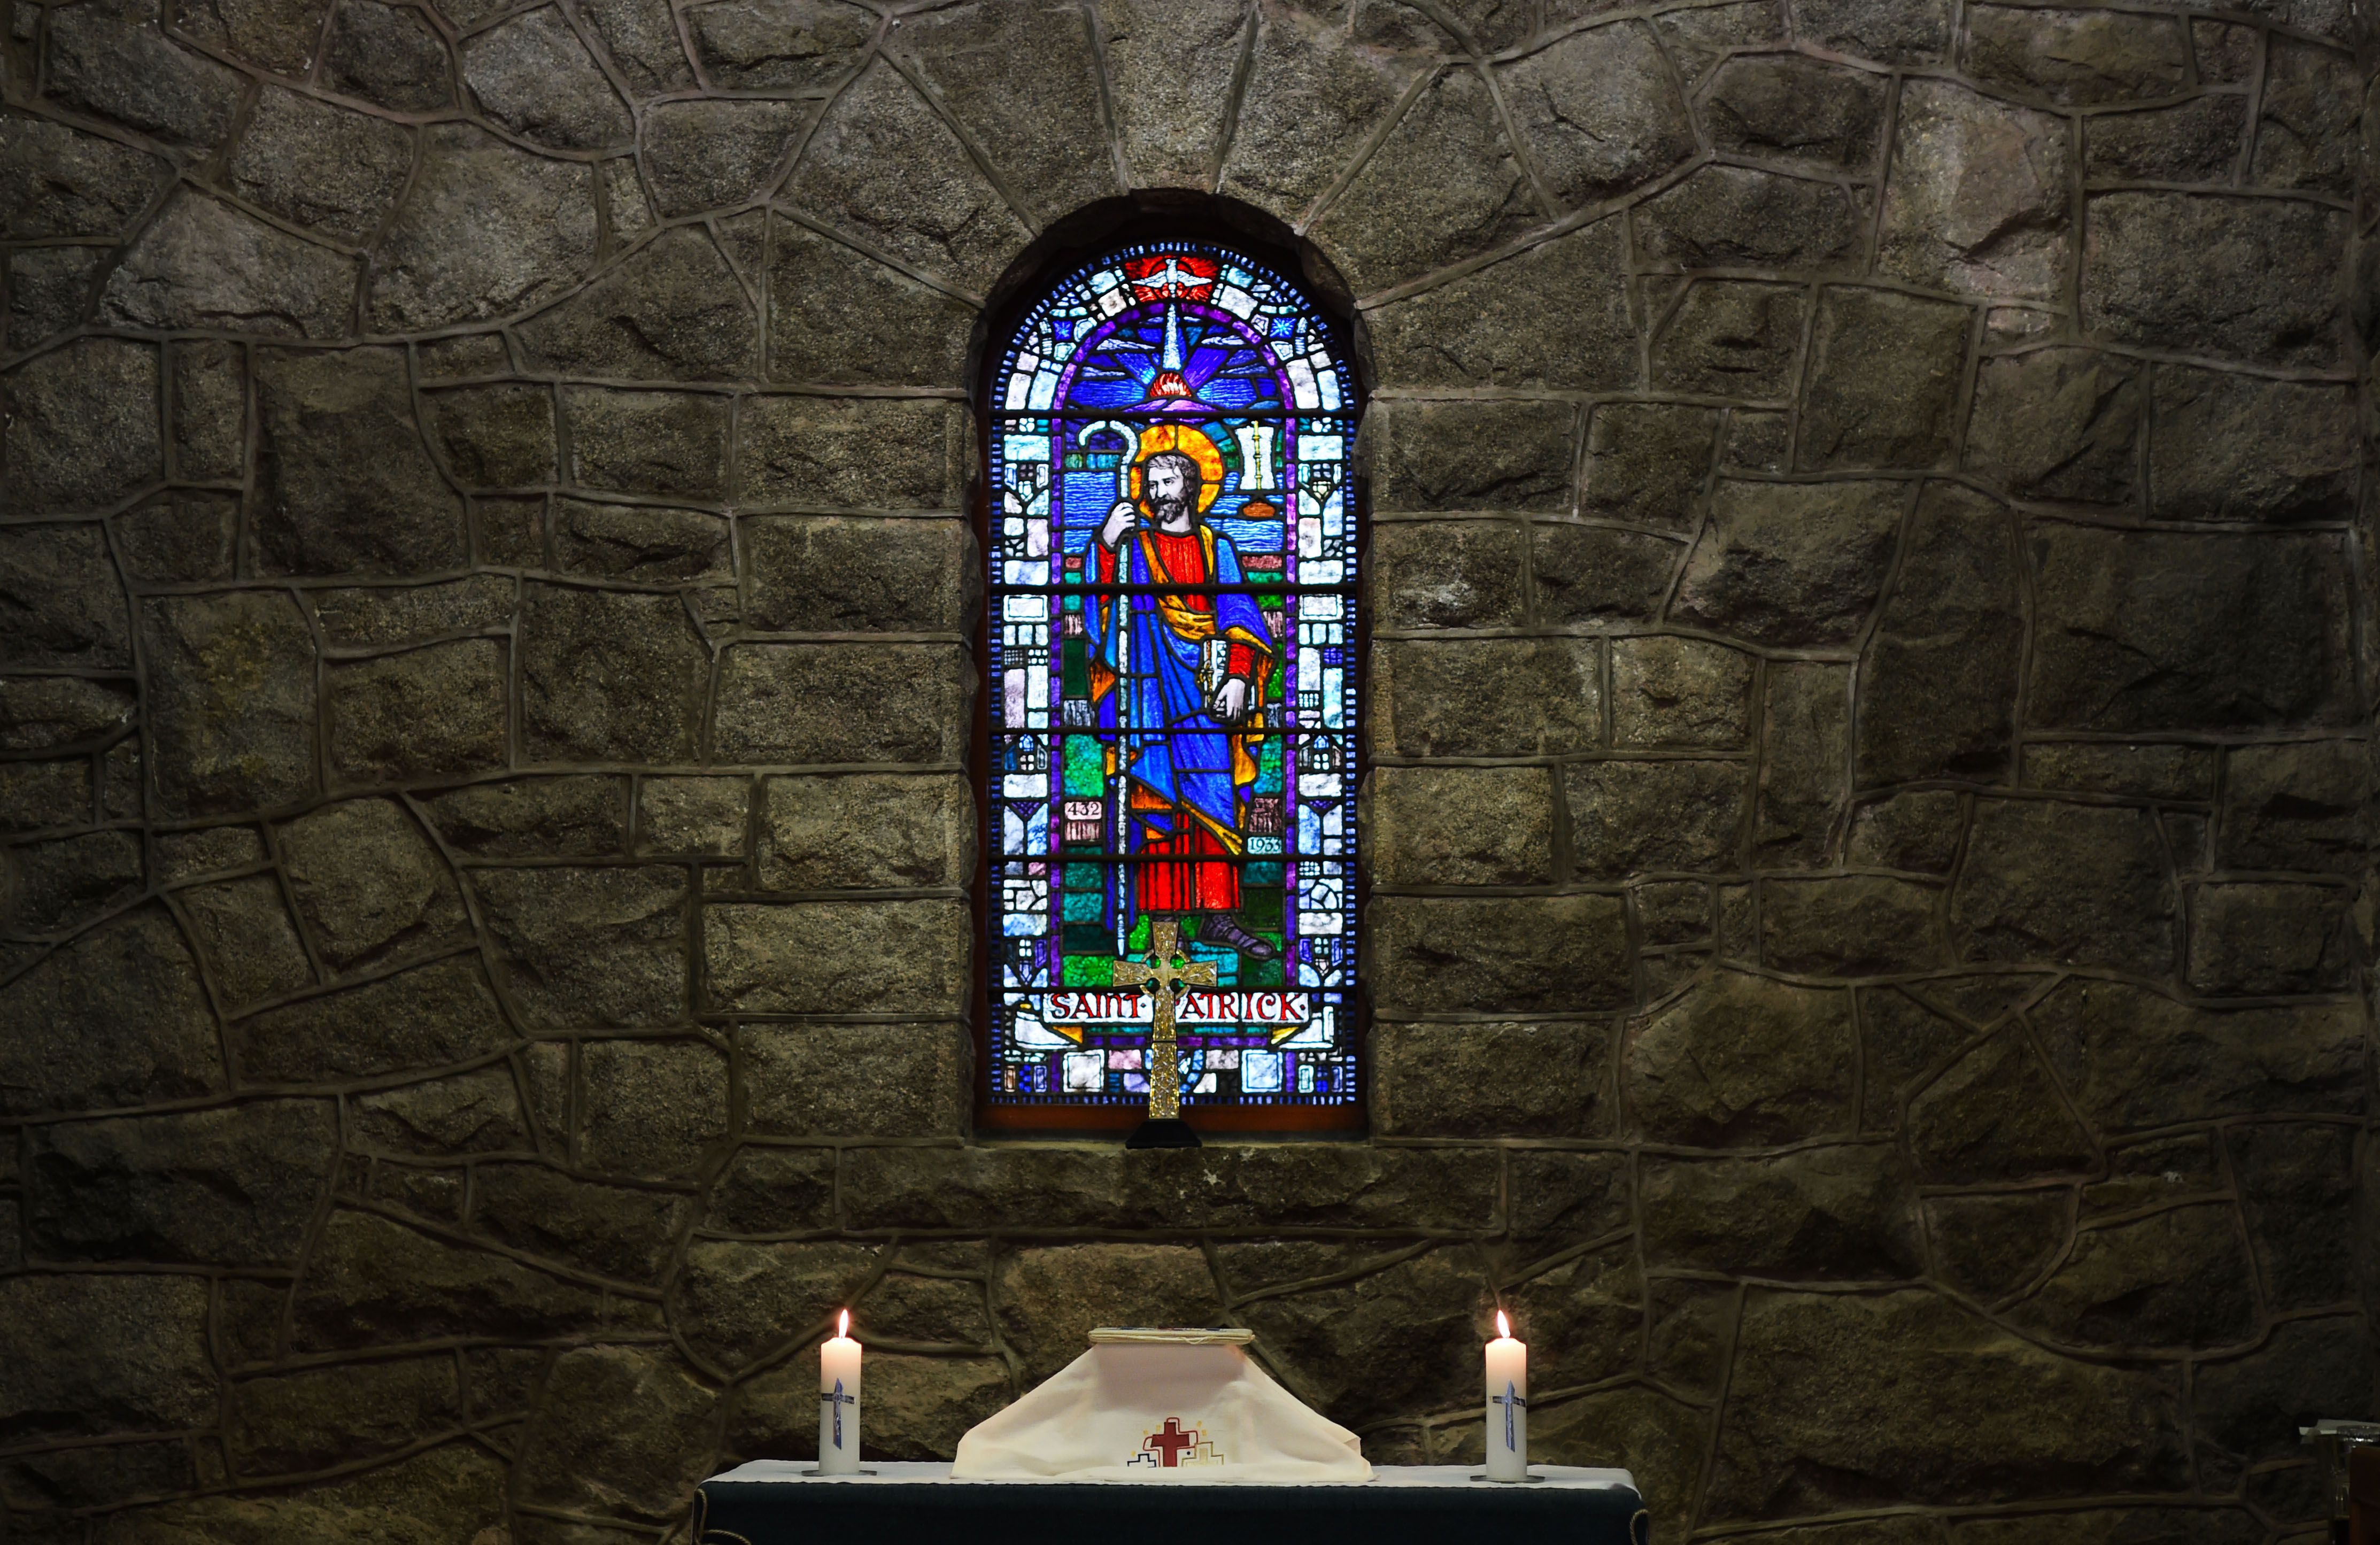 The altar at Saint Patrick's Church with the stained glass window of Saint Patrick